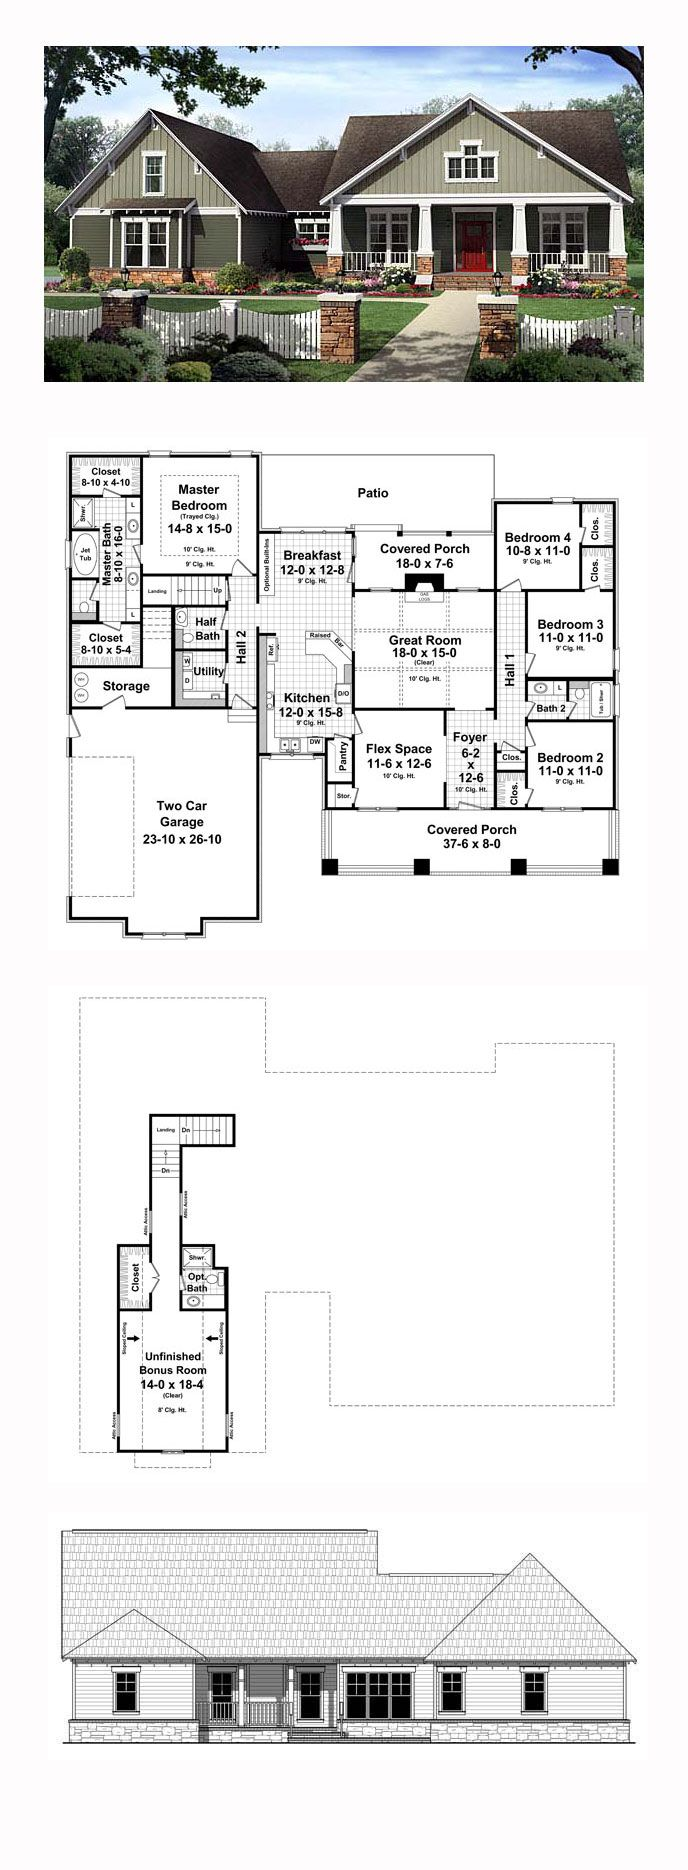 Best 25 4 bedroom house ideas on Pinterest House floor plans 4